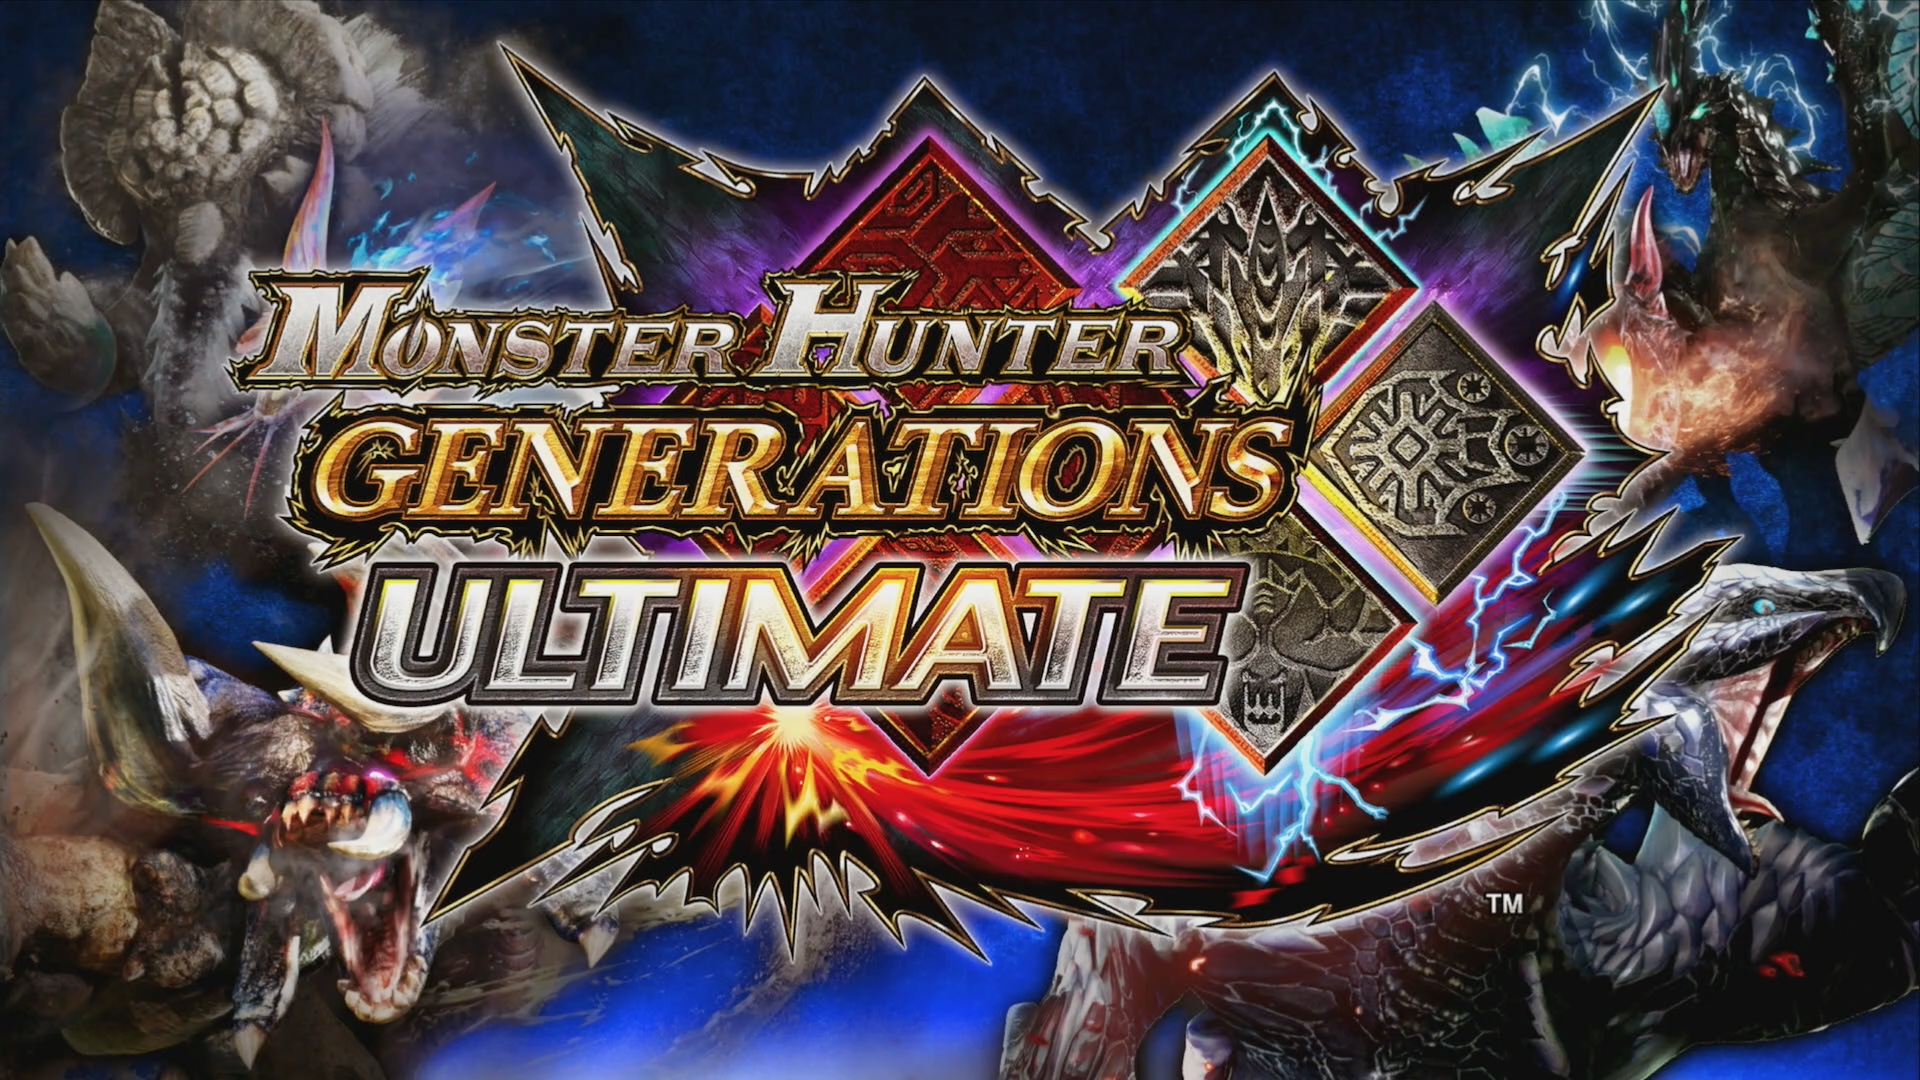 Monster Hunter Generations Ultimate footage emerges